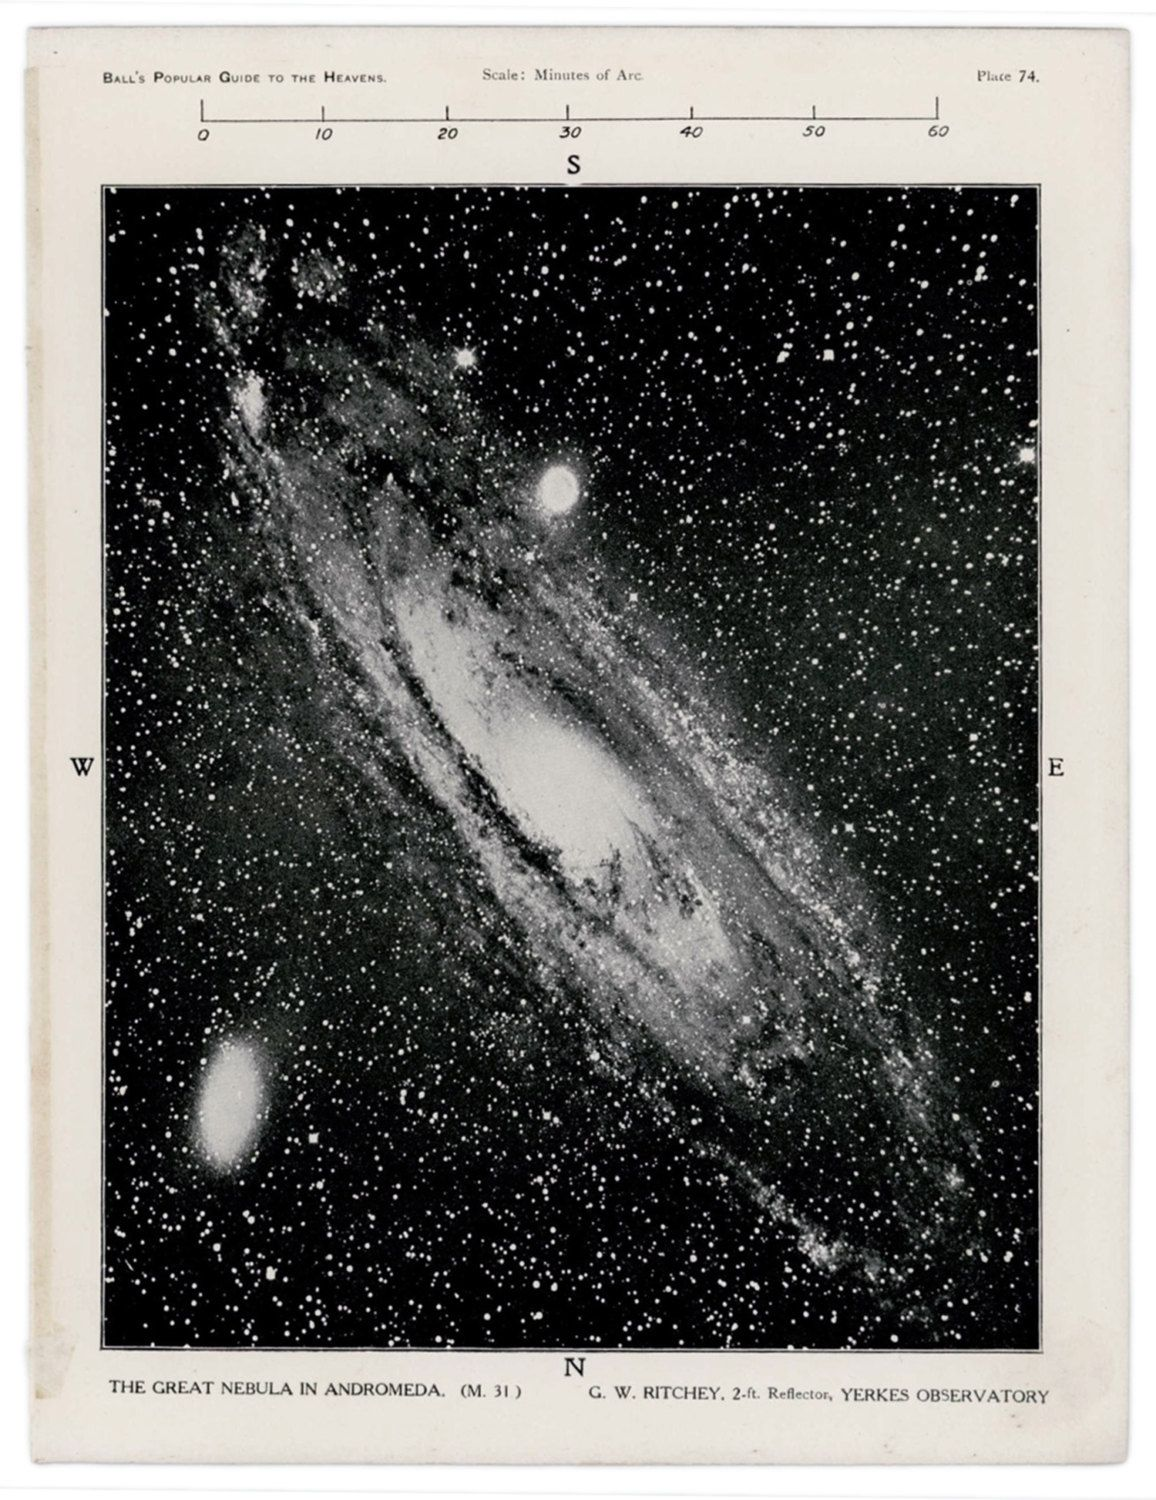 Andromeda Galaxy Artwork Retro Space Nebula Science Graphic Print Vintage Astronomy Illustration Geek Gift Scien Galaxy Artwork Antique Astronomy Prints Nebula